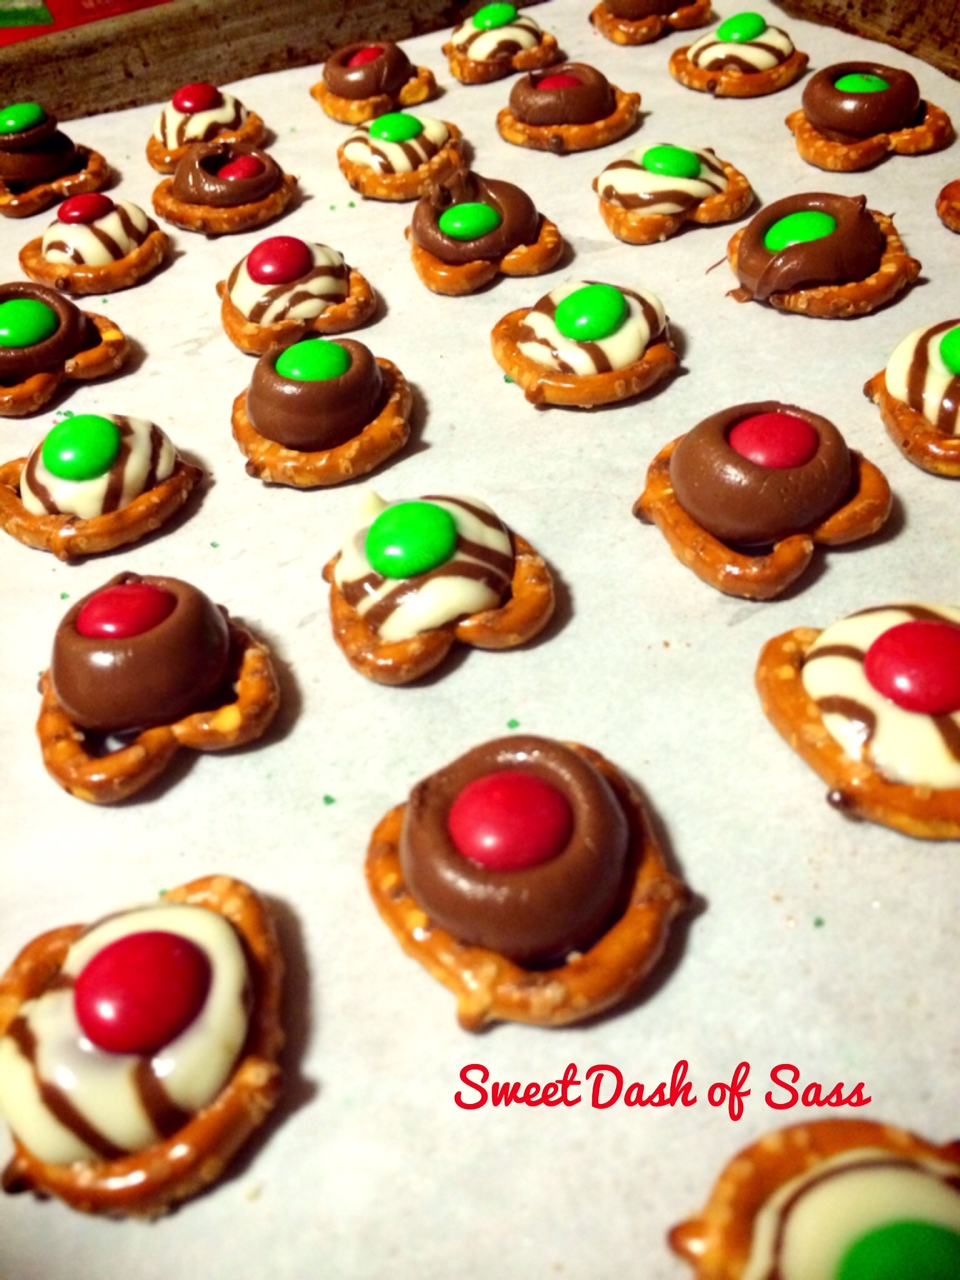 Chocolate Pretzel Bites - www.SweetDashofSass.com = 25 Days of Christmas - Cookie Style